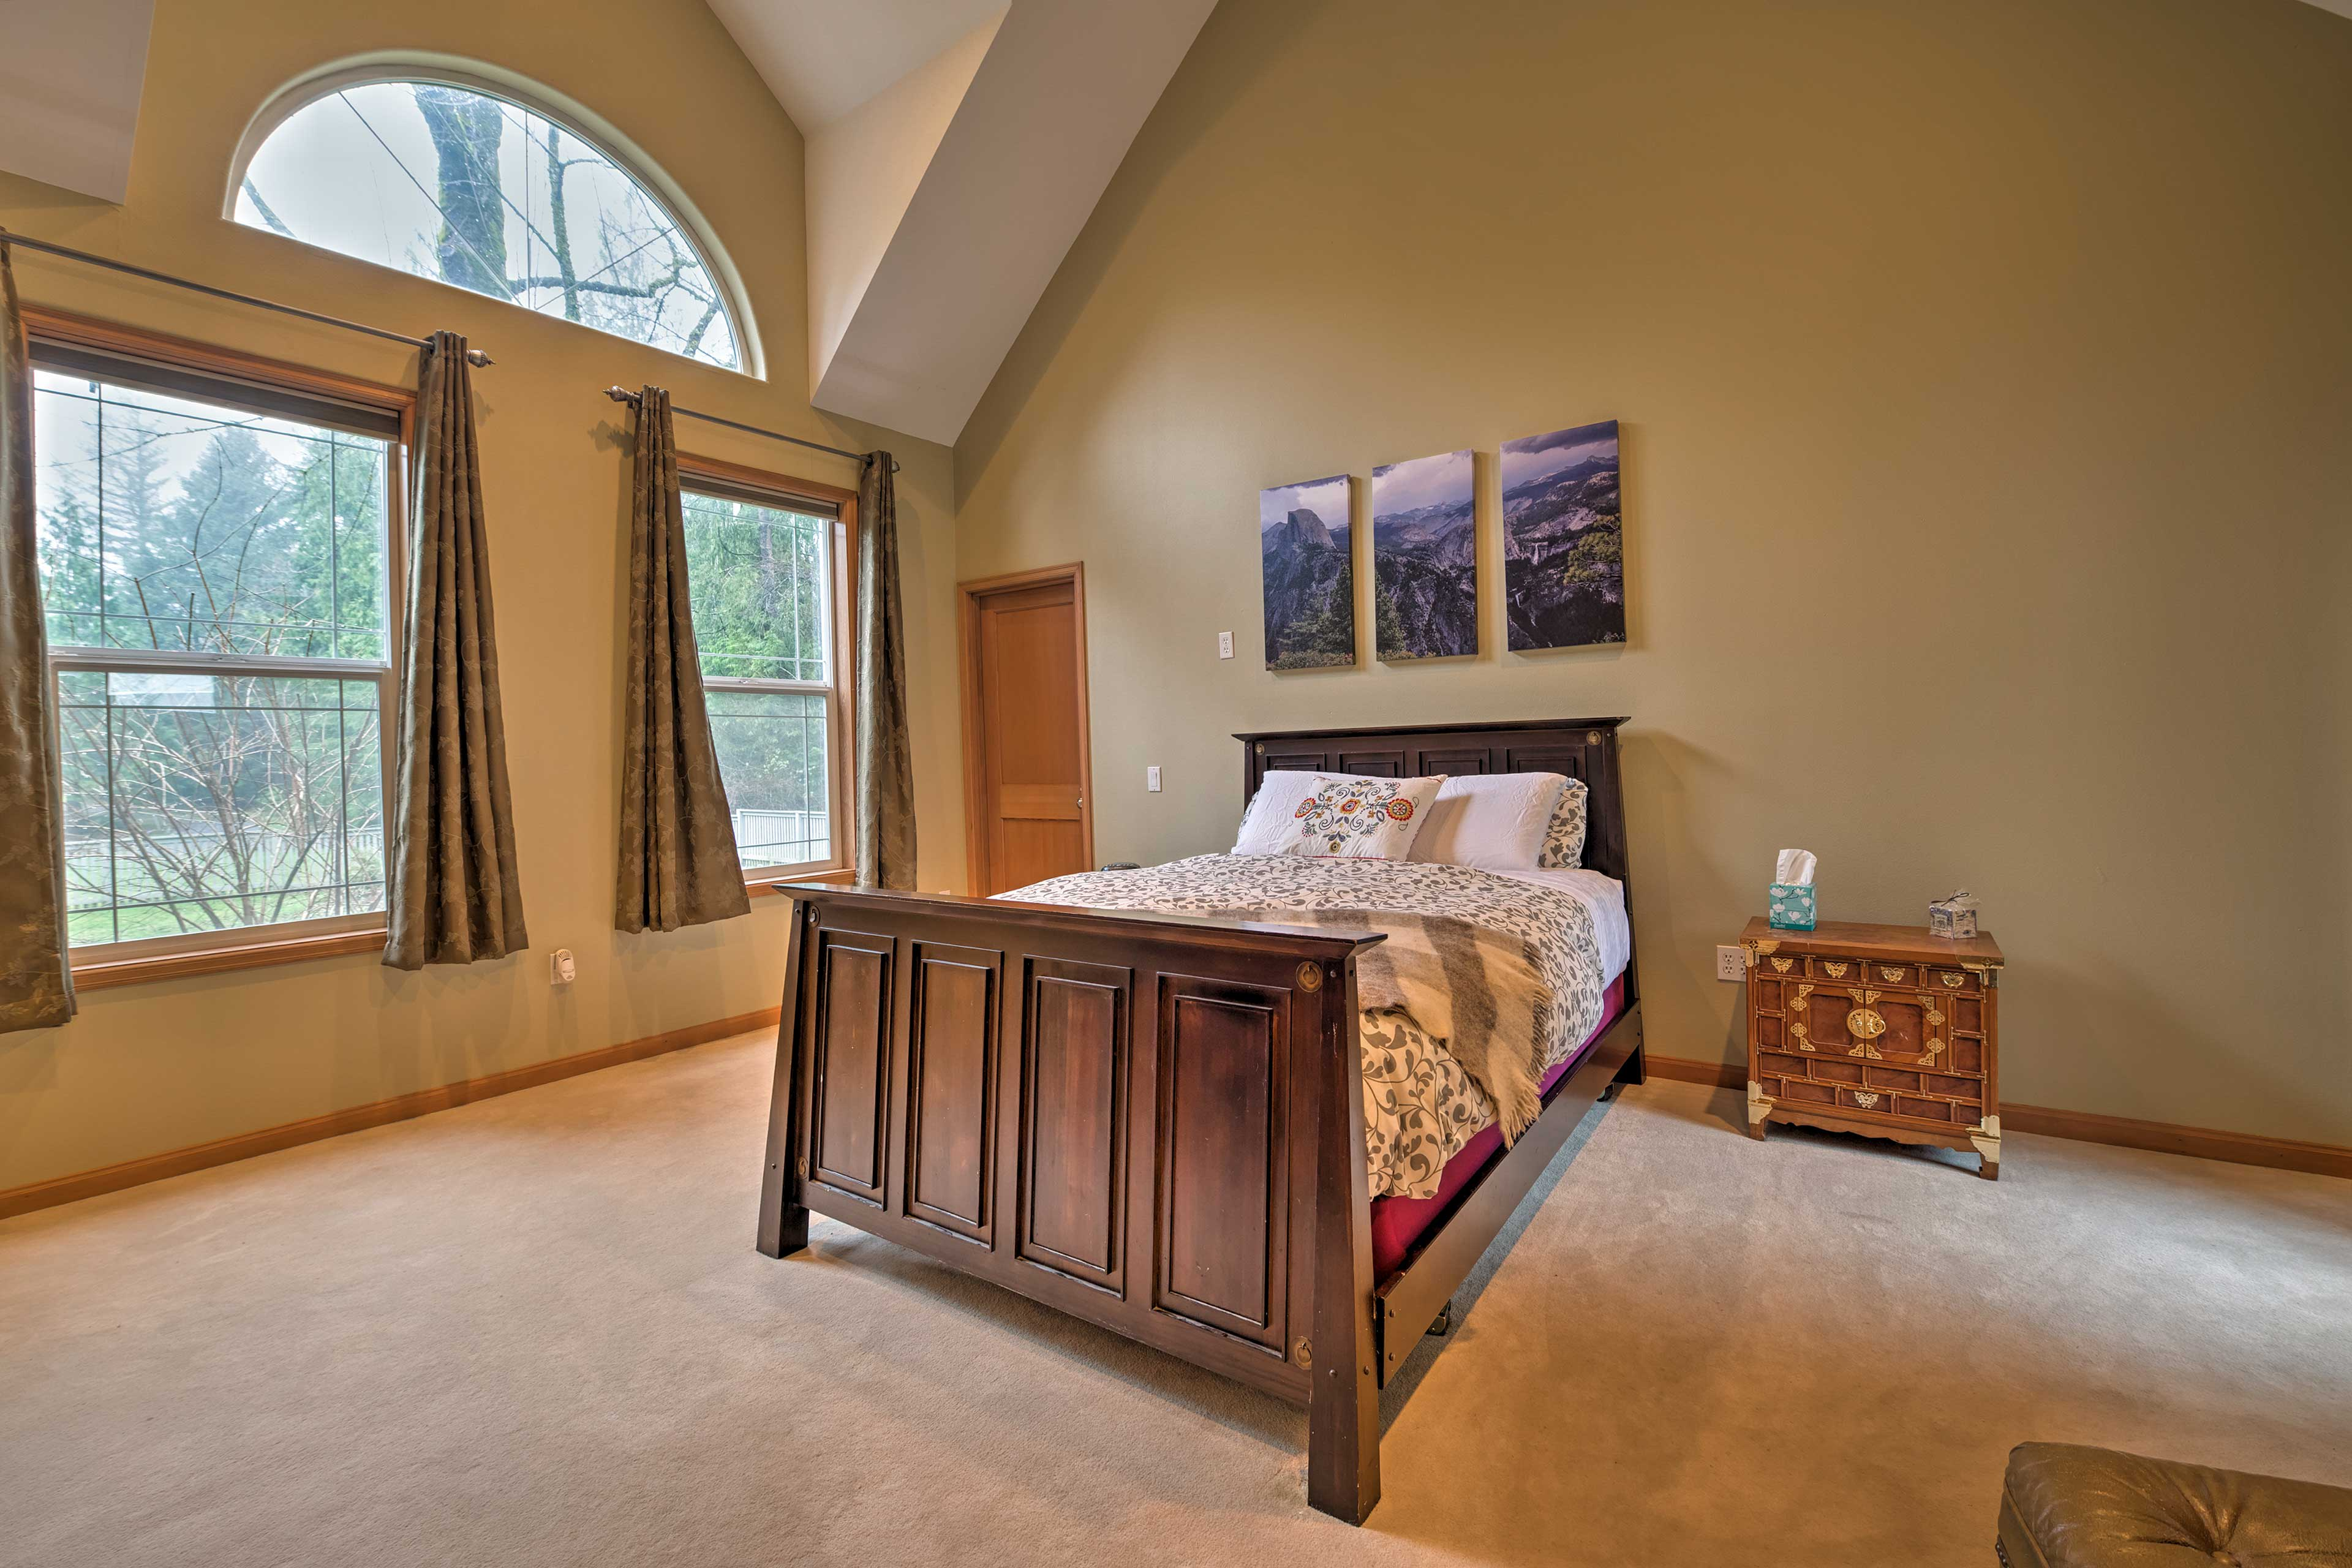 Wake up to the natural morning light as you cuddle in the queen bed.